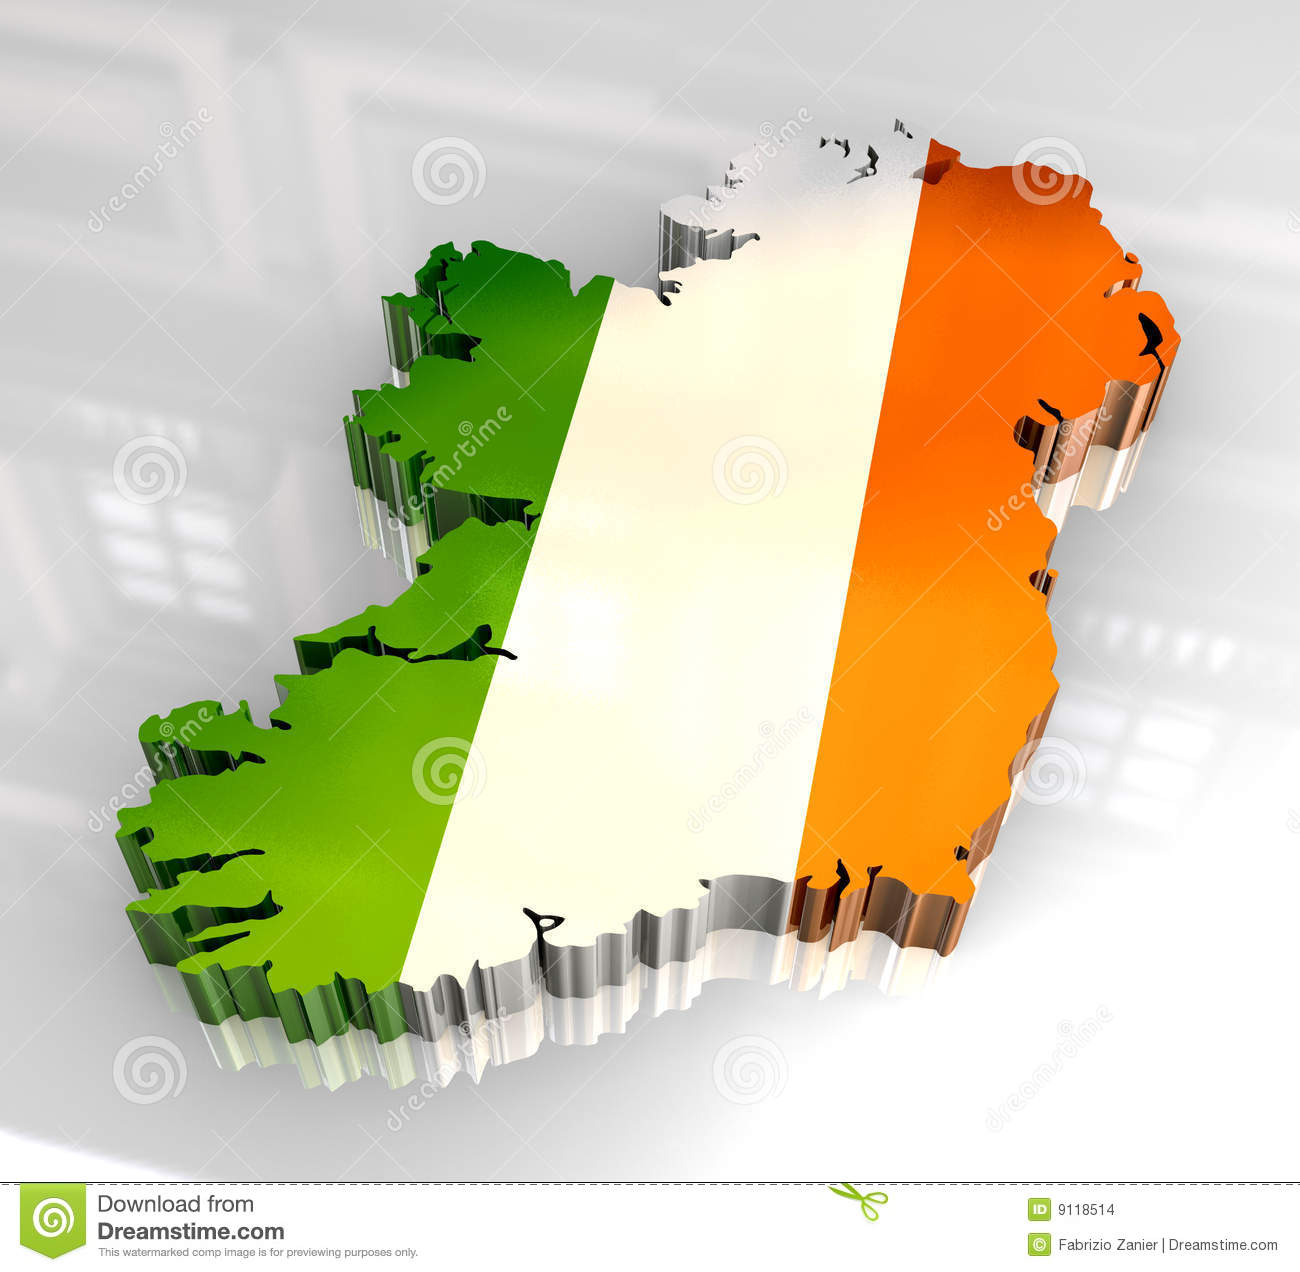 Map Of Ireland 3d.3d Flag Map Of Ireland Stock Illustration Illustration Of Green